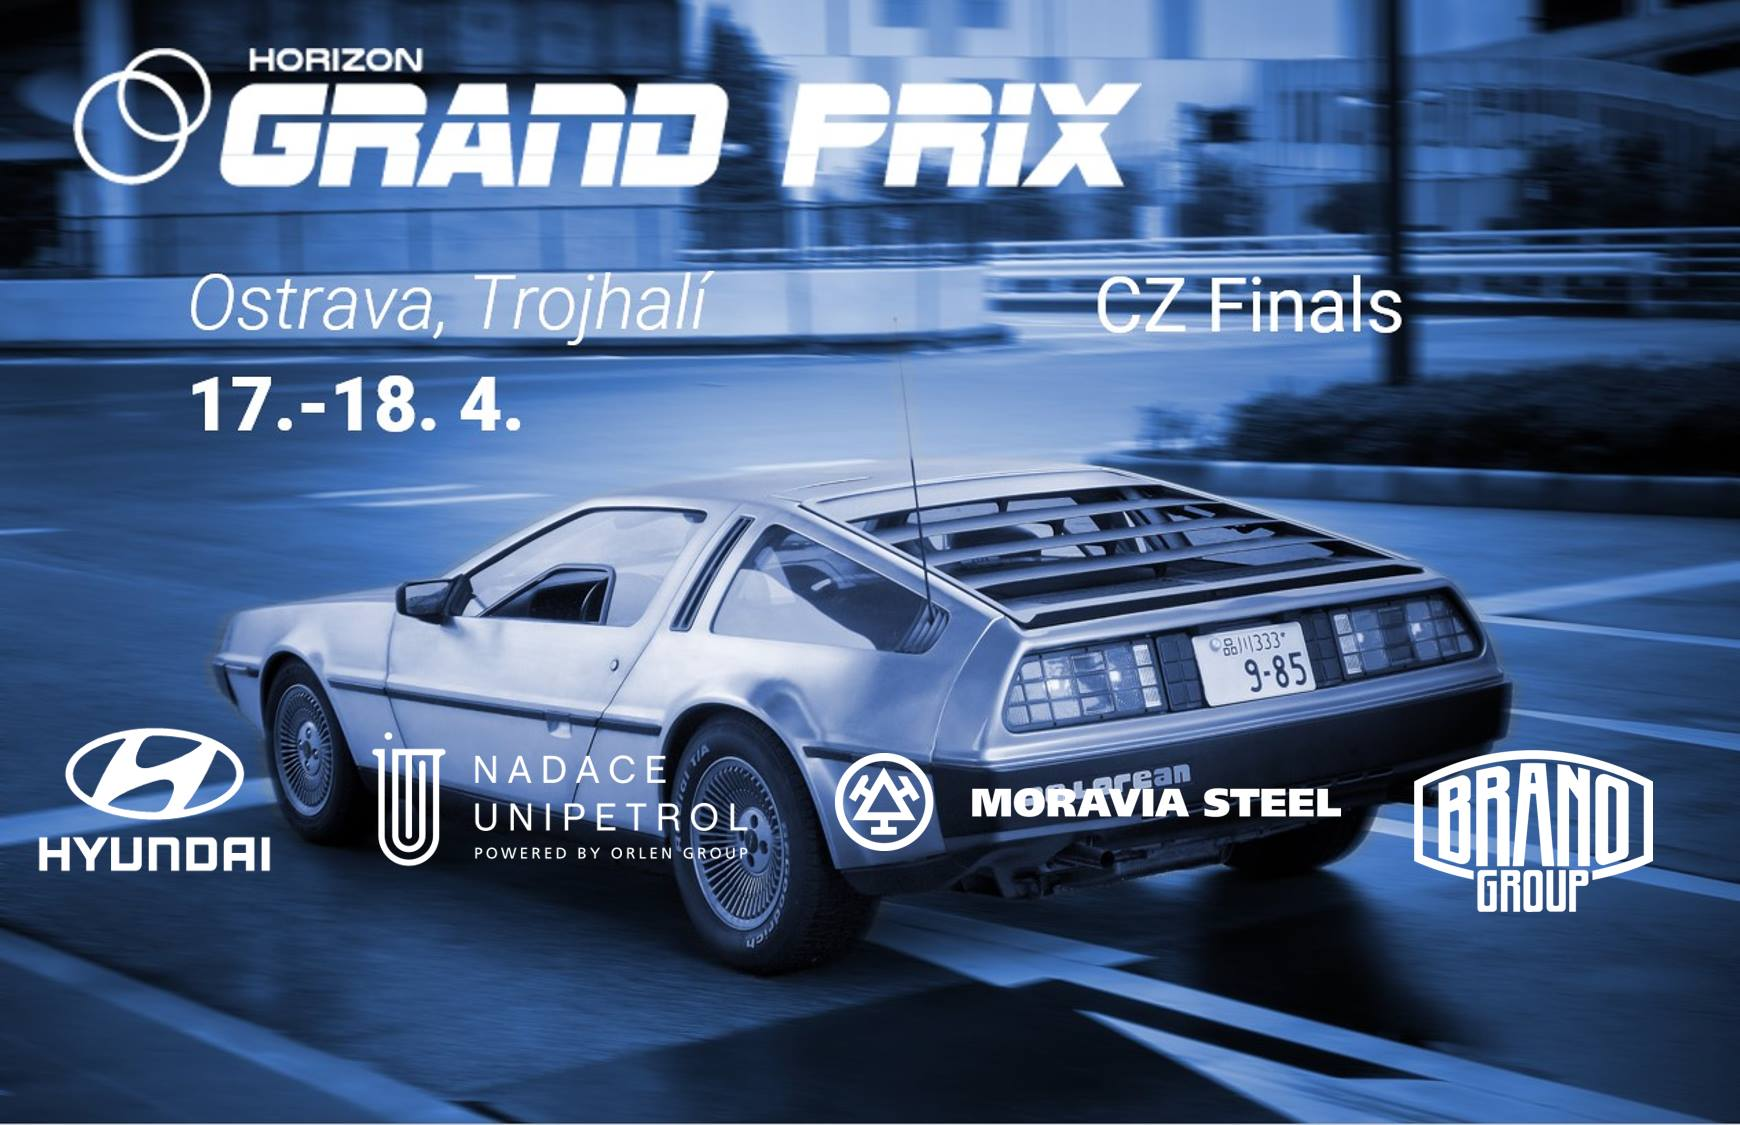 Horizon Grand Prix